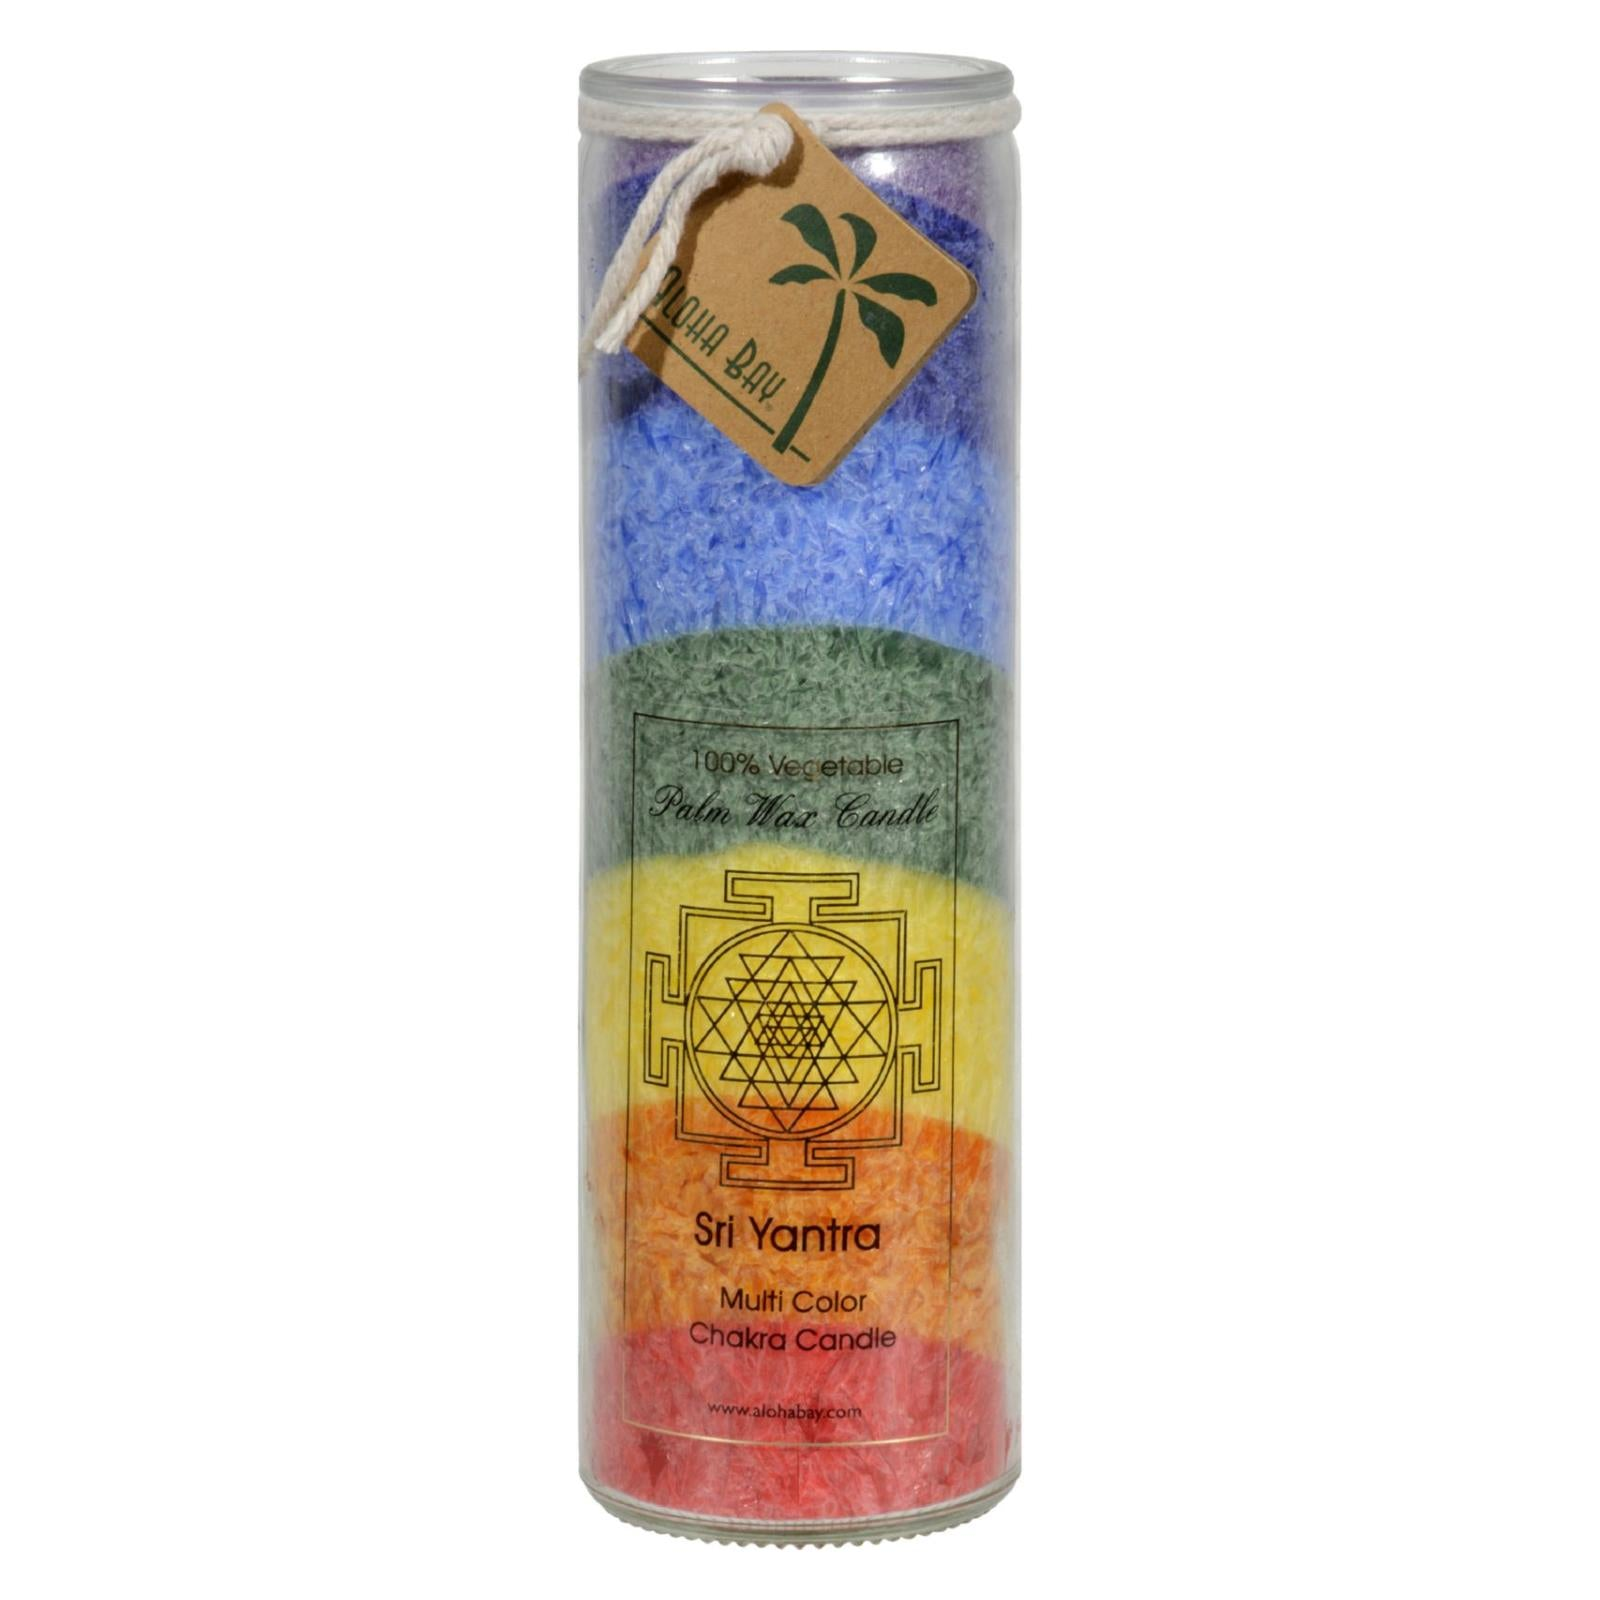 Buy Aloha Bay Unscented Chakra Jar Rainbow Sri Yantra 7 Color - 1 Candle - Jar Candles from Veroeco.com